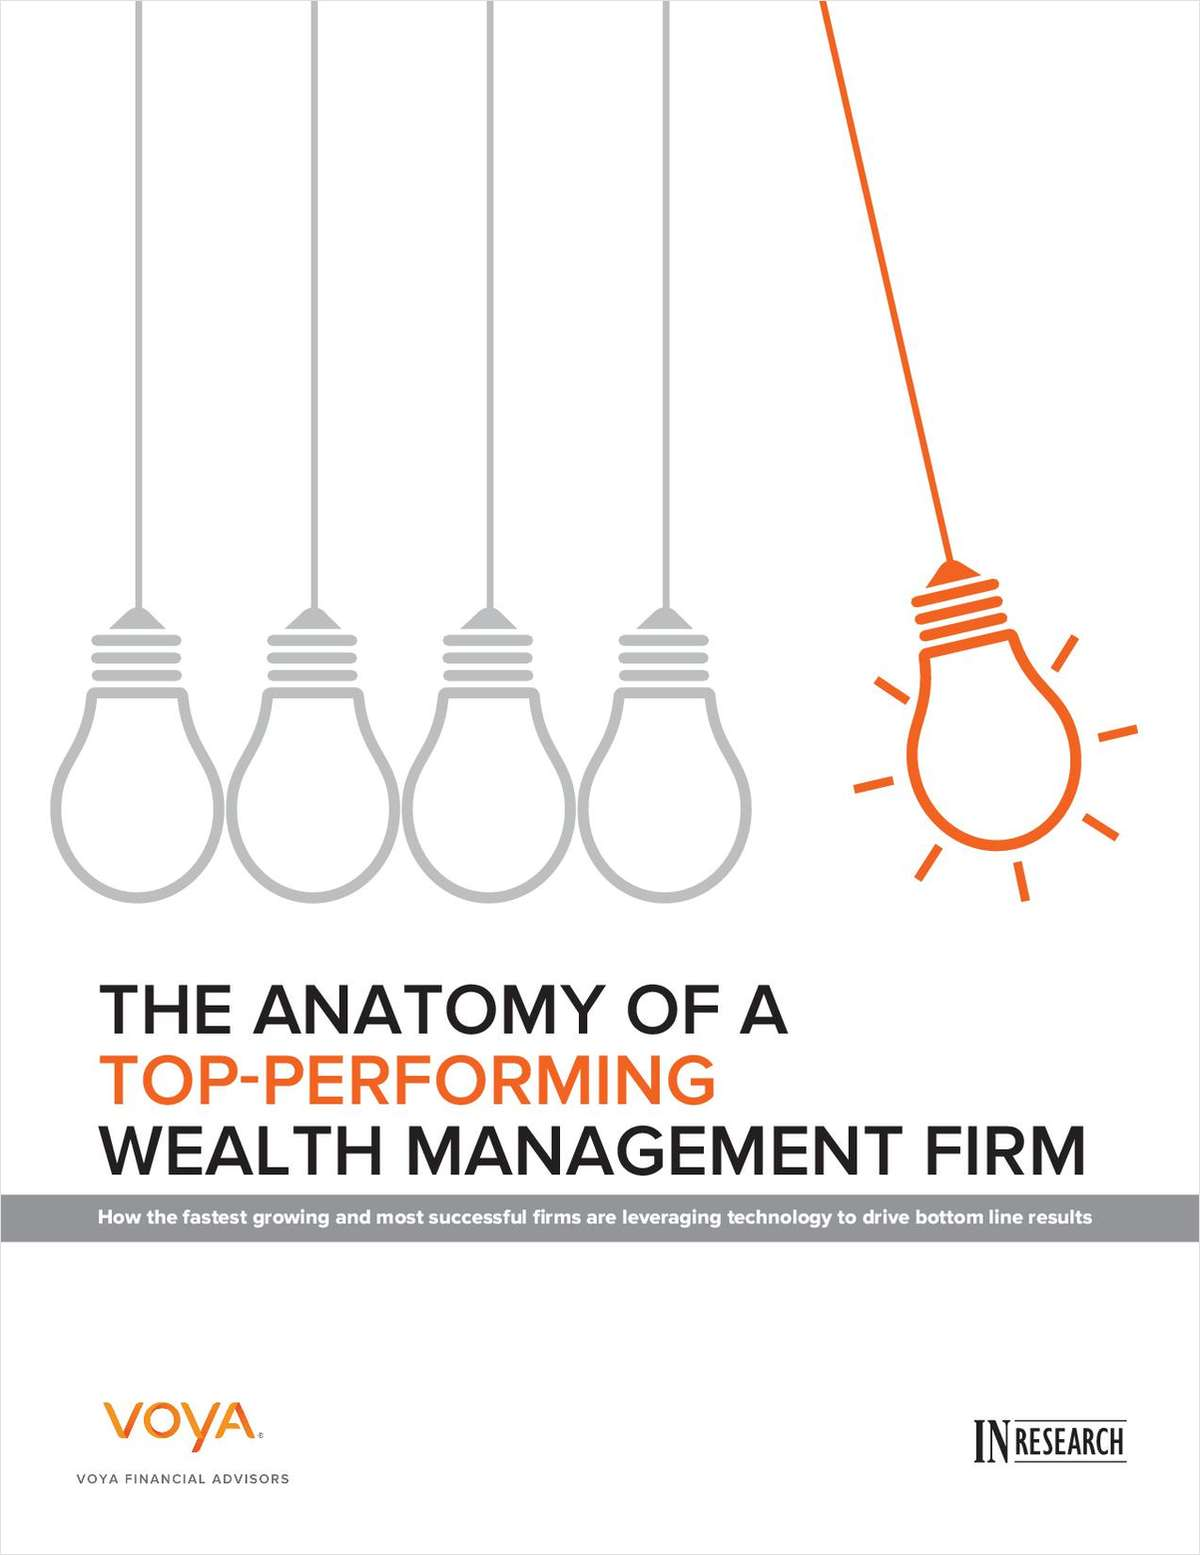 The Anatomy of a Top-Performing Wealth Management Firm